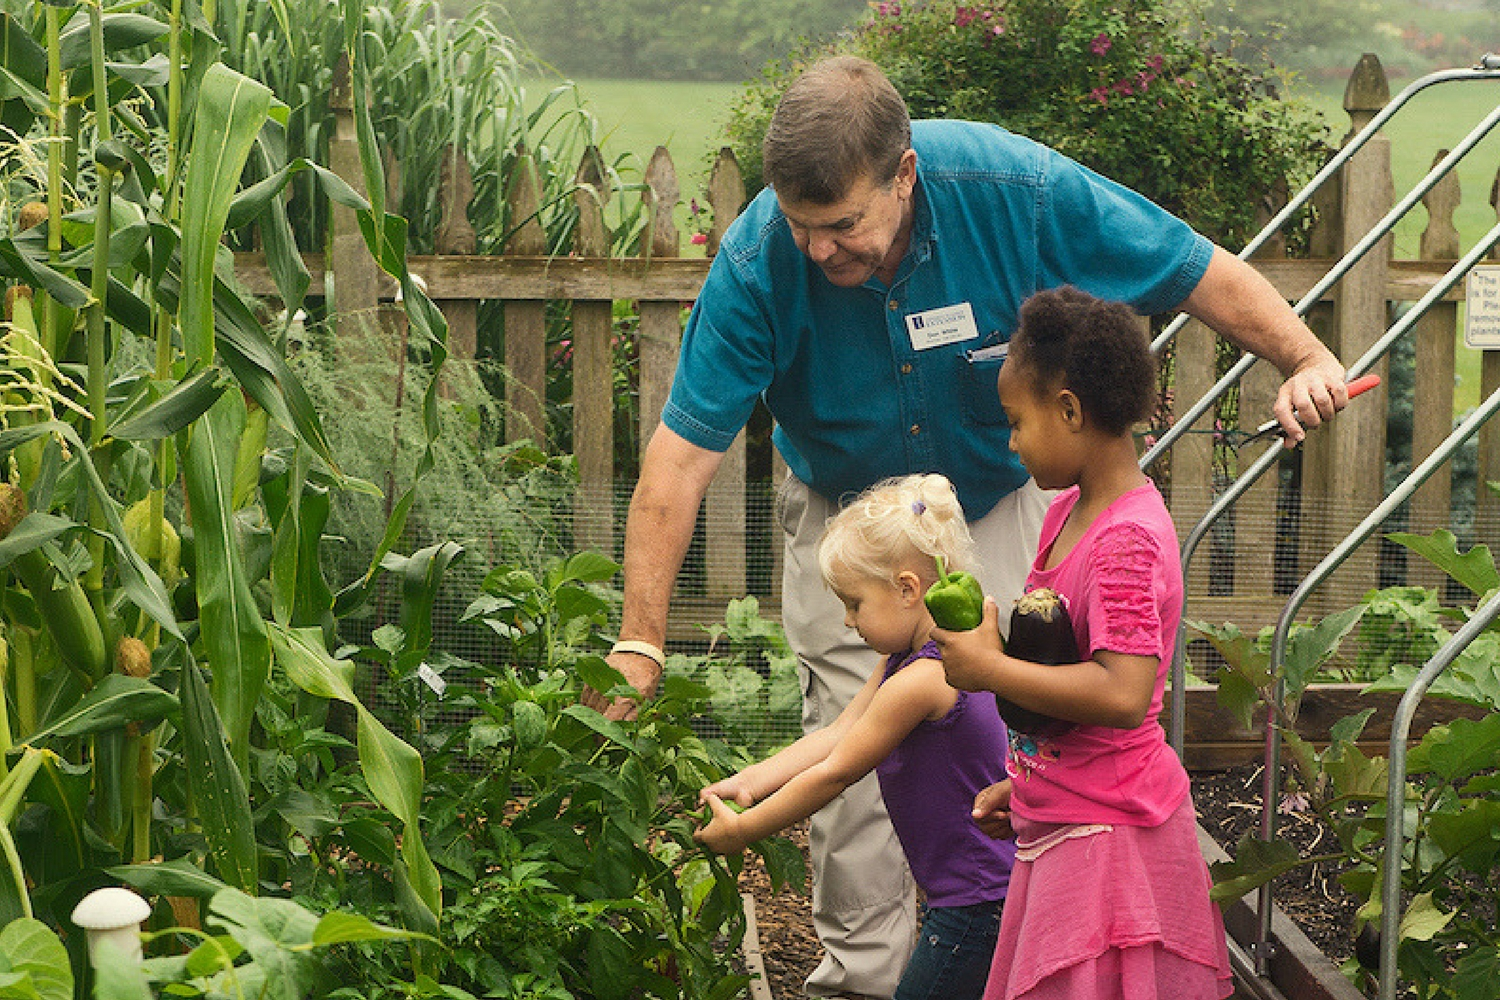 Master Gardener harvesting produce in garden with children